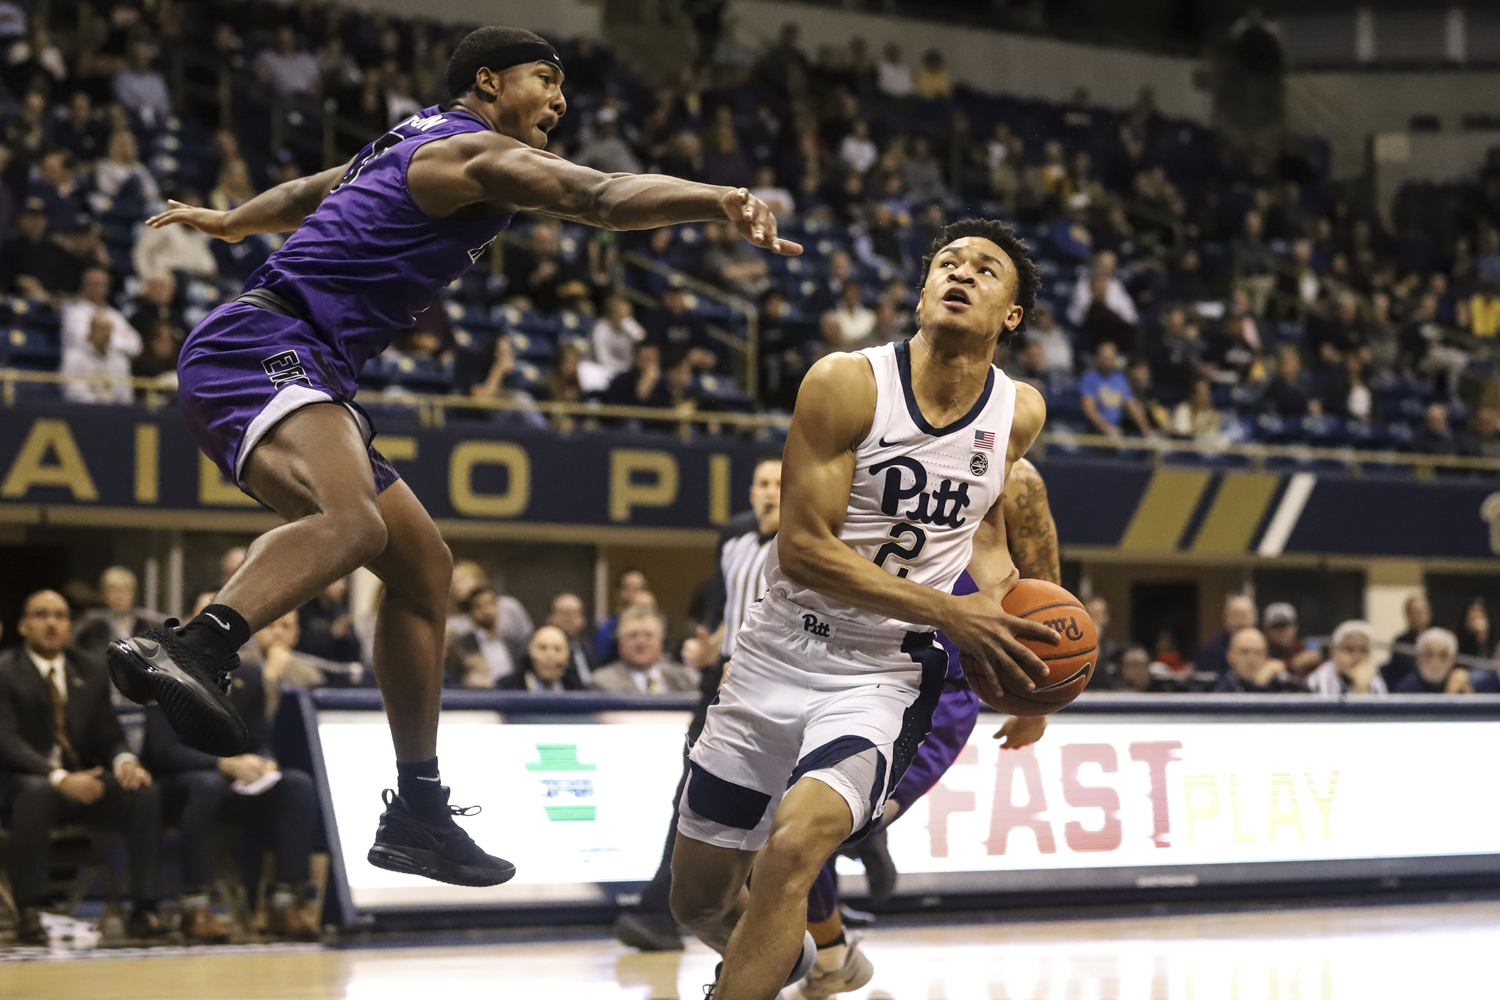 First-year guard Trey McGowens, pictured here against Niagara, led Pitt with 17 points in its ACC-opening loss to UNC.